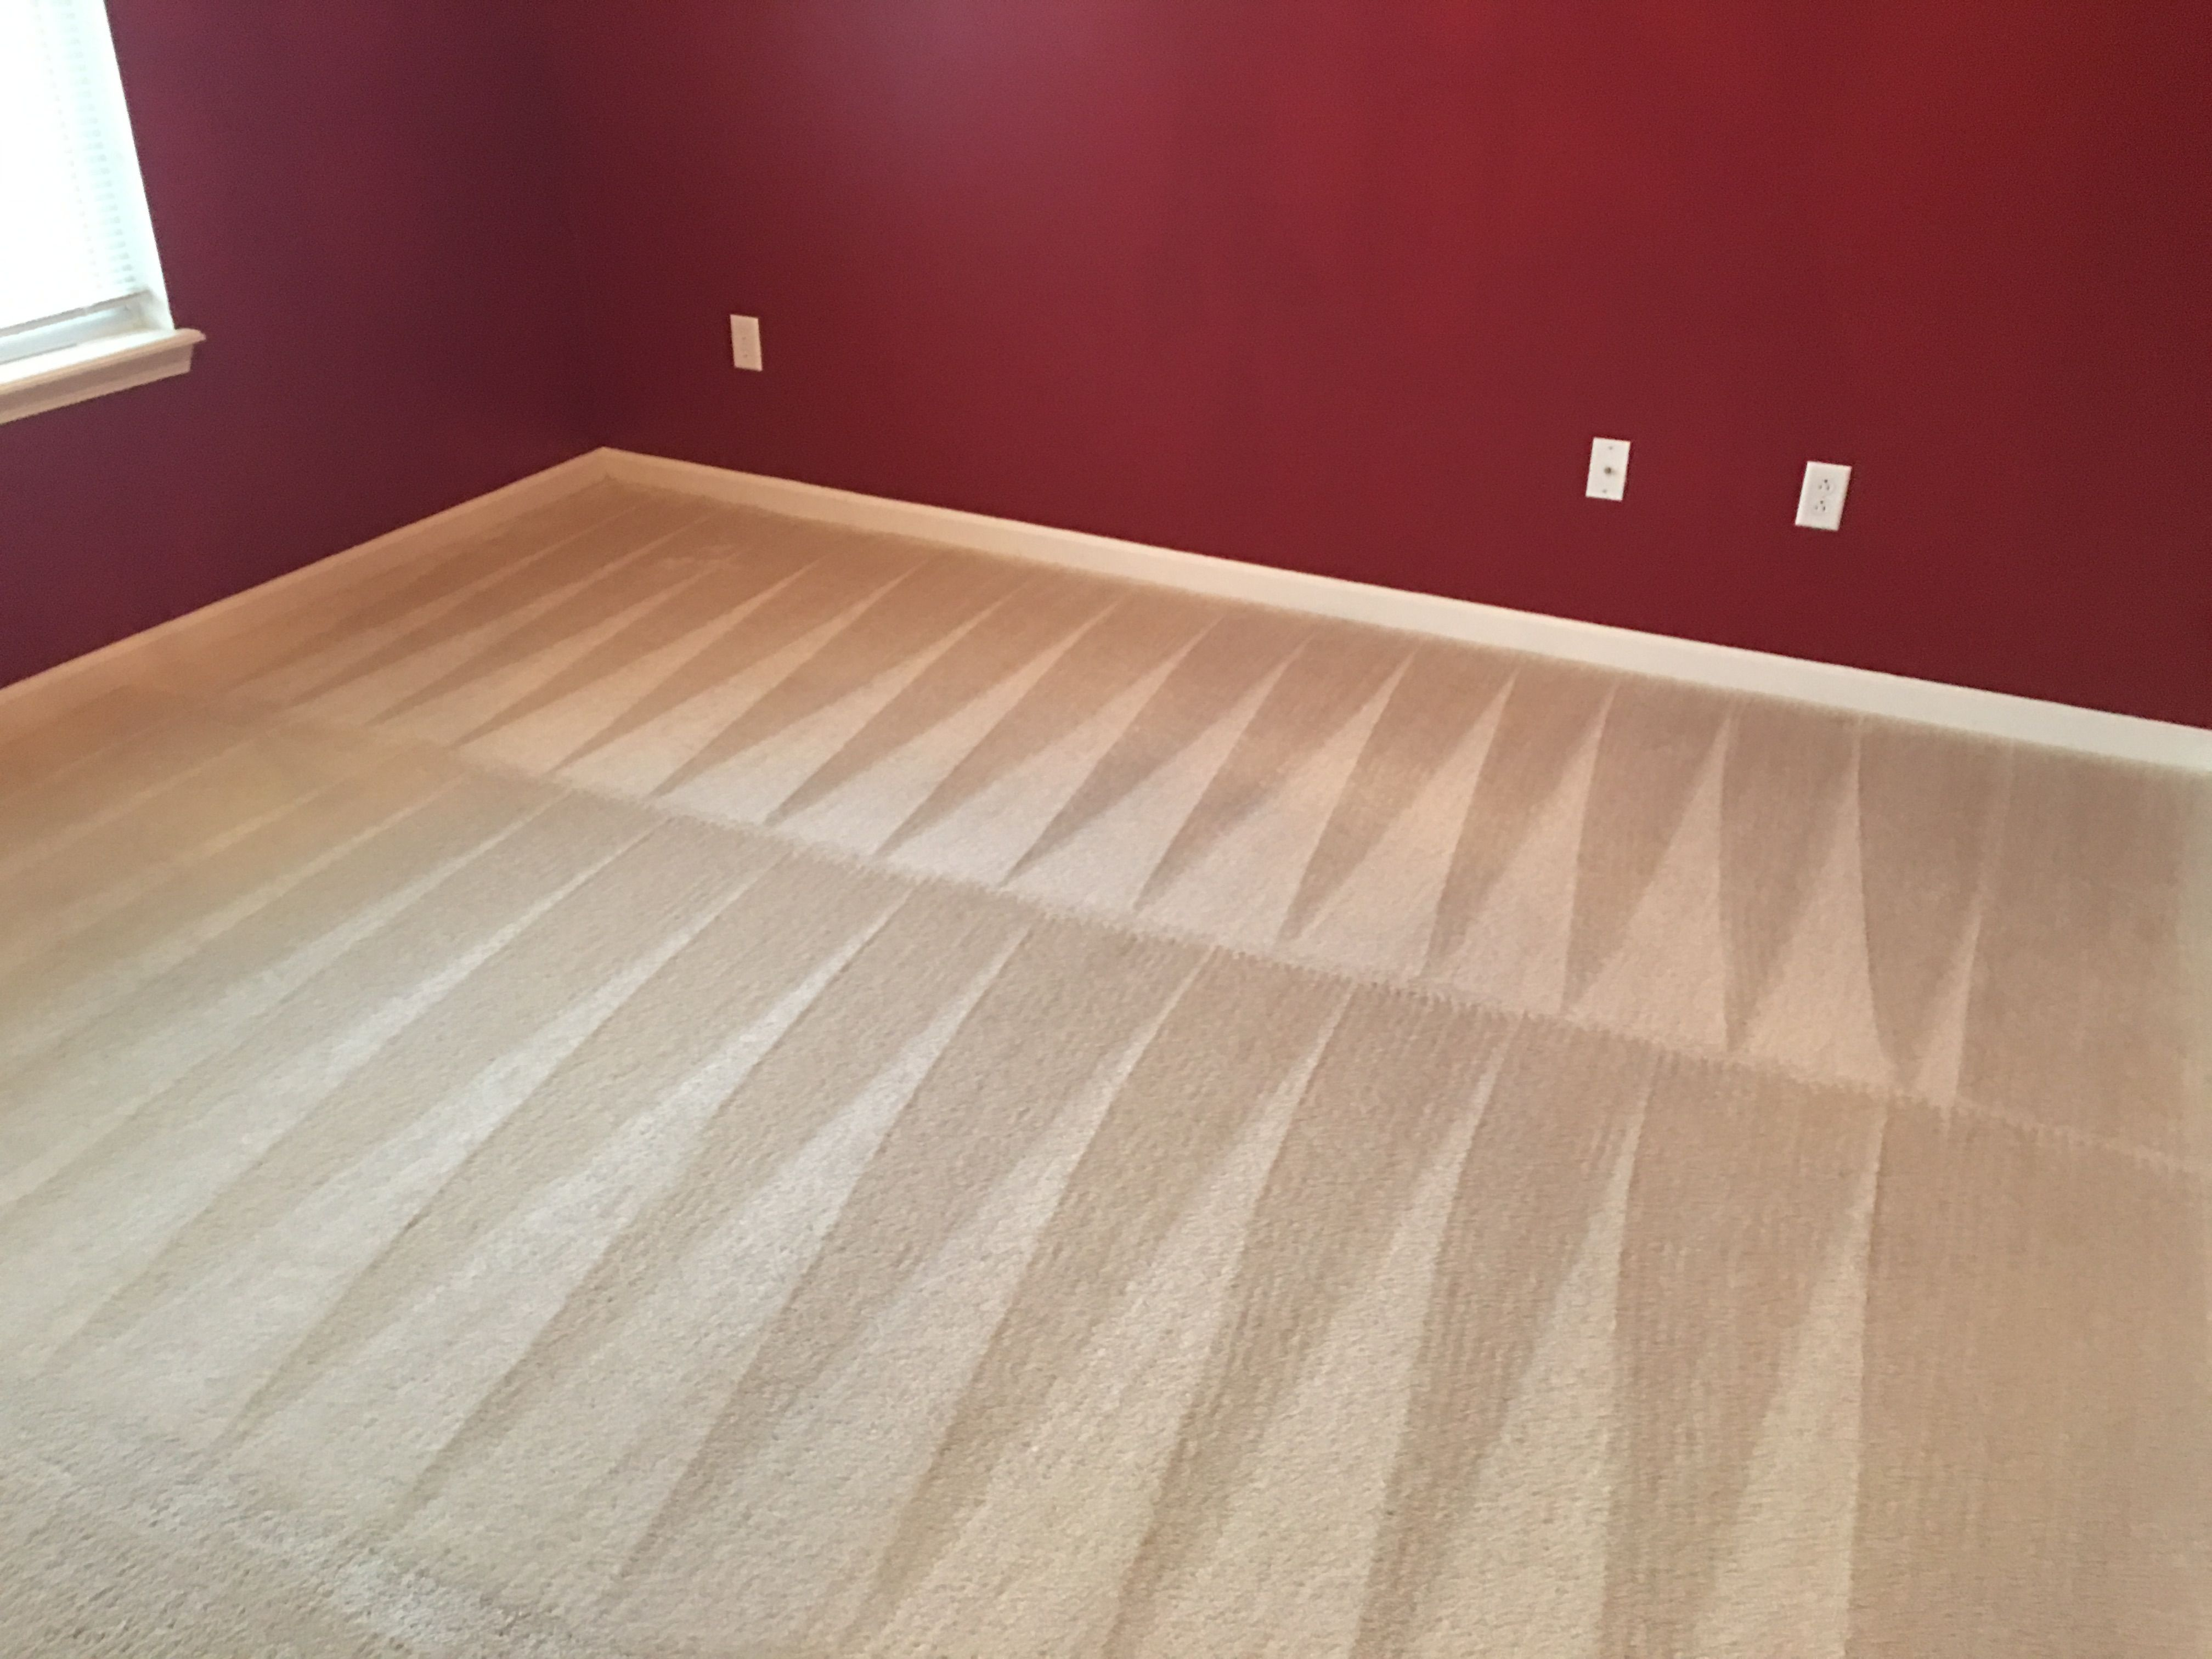 Pin By E Cleaning On Carpet Cleanign Tips How To Clean Carpet Carpet Cleaning Solution Carpet Odor Remover